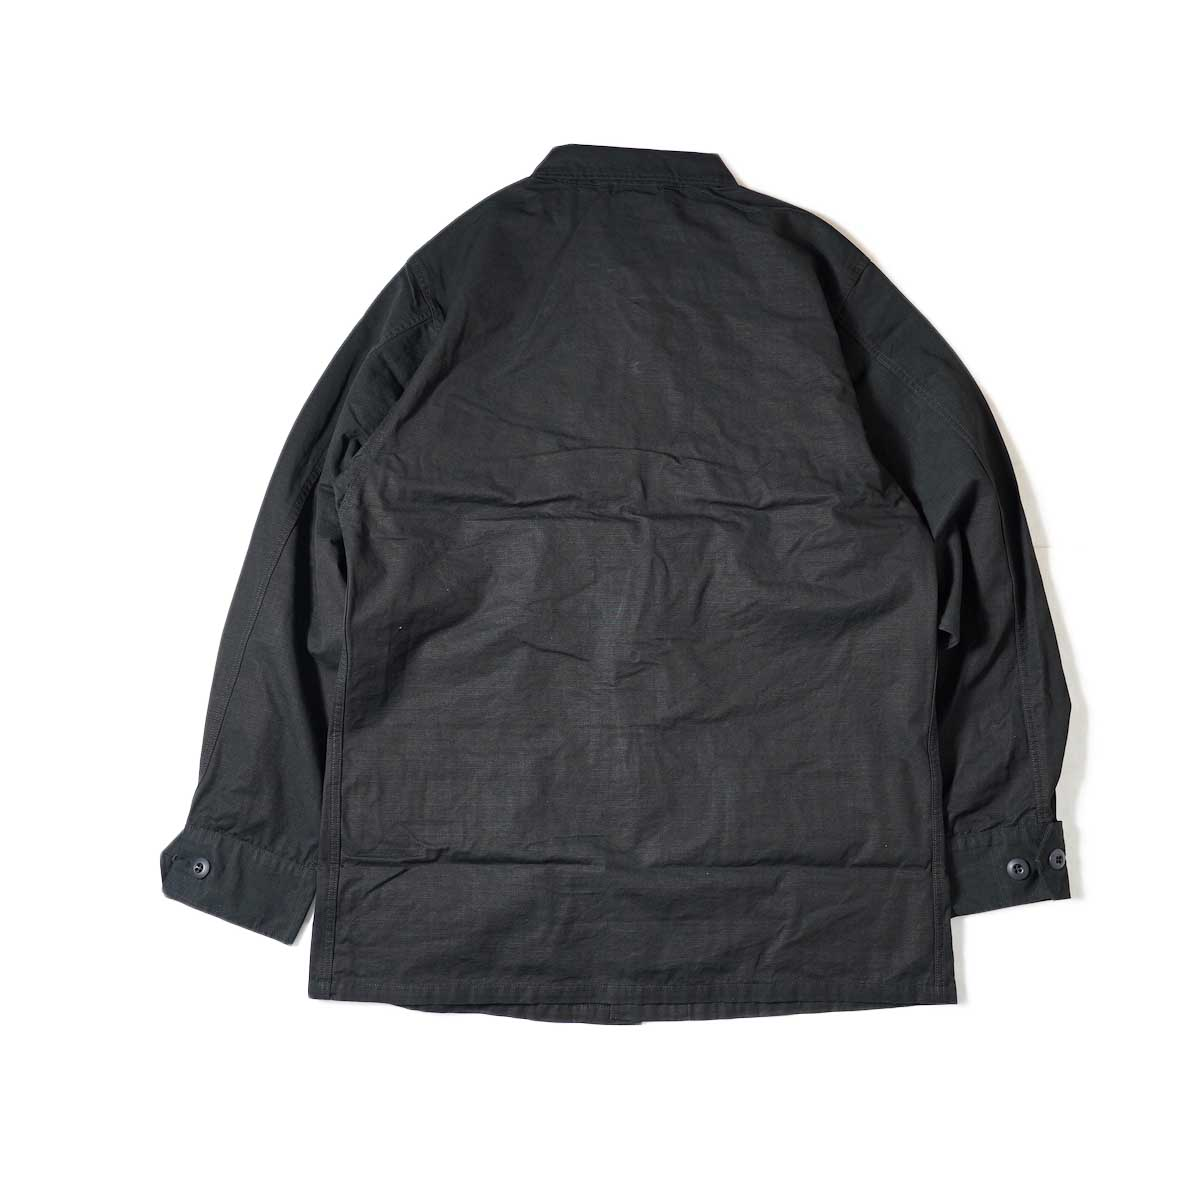 orSlow / US Army Tropical Jacket (Black Rip Stop) 背面